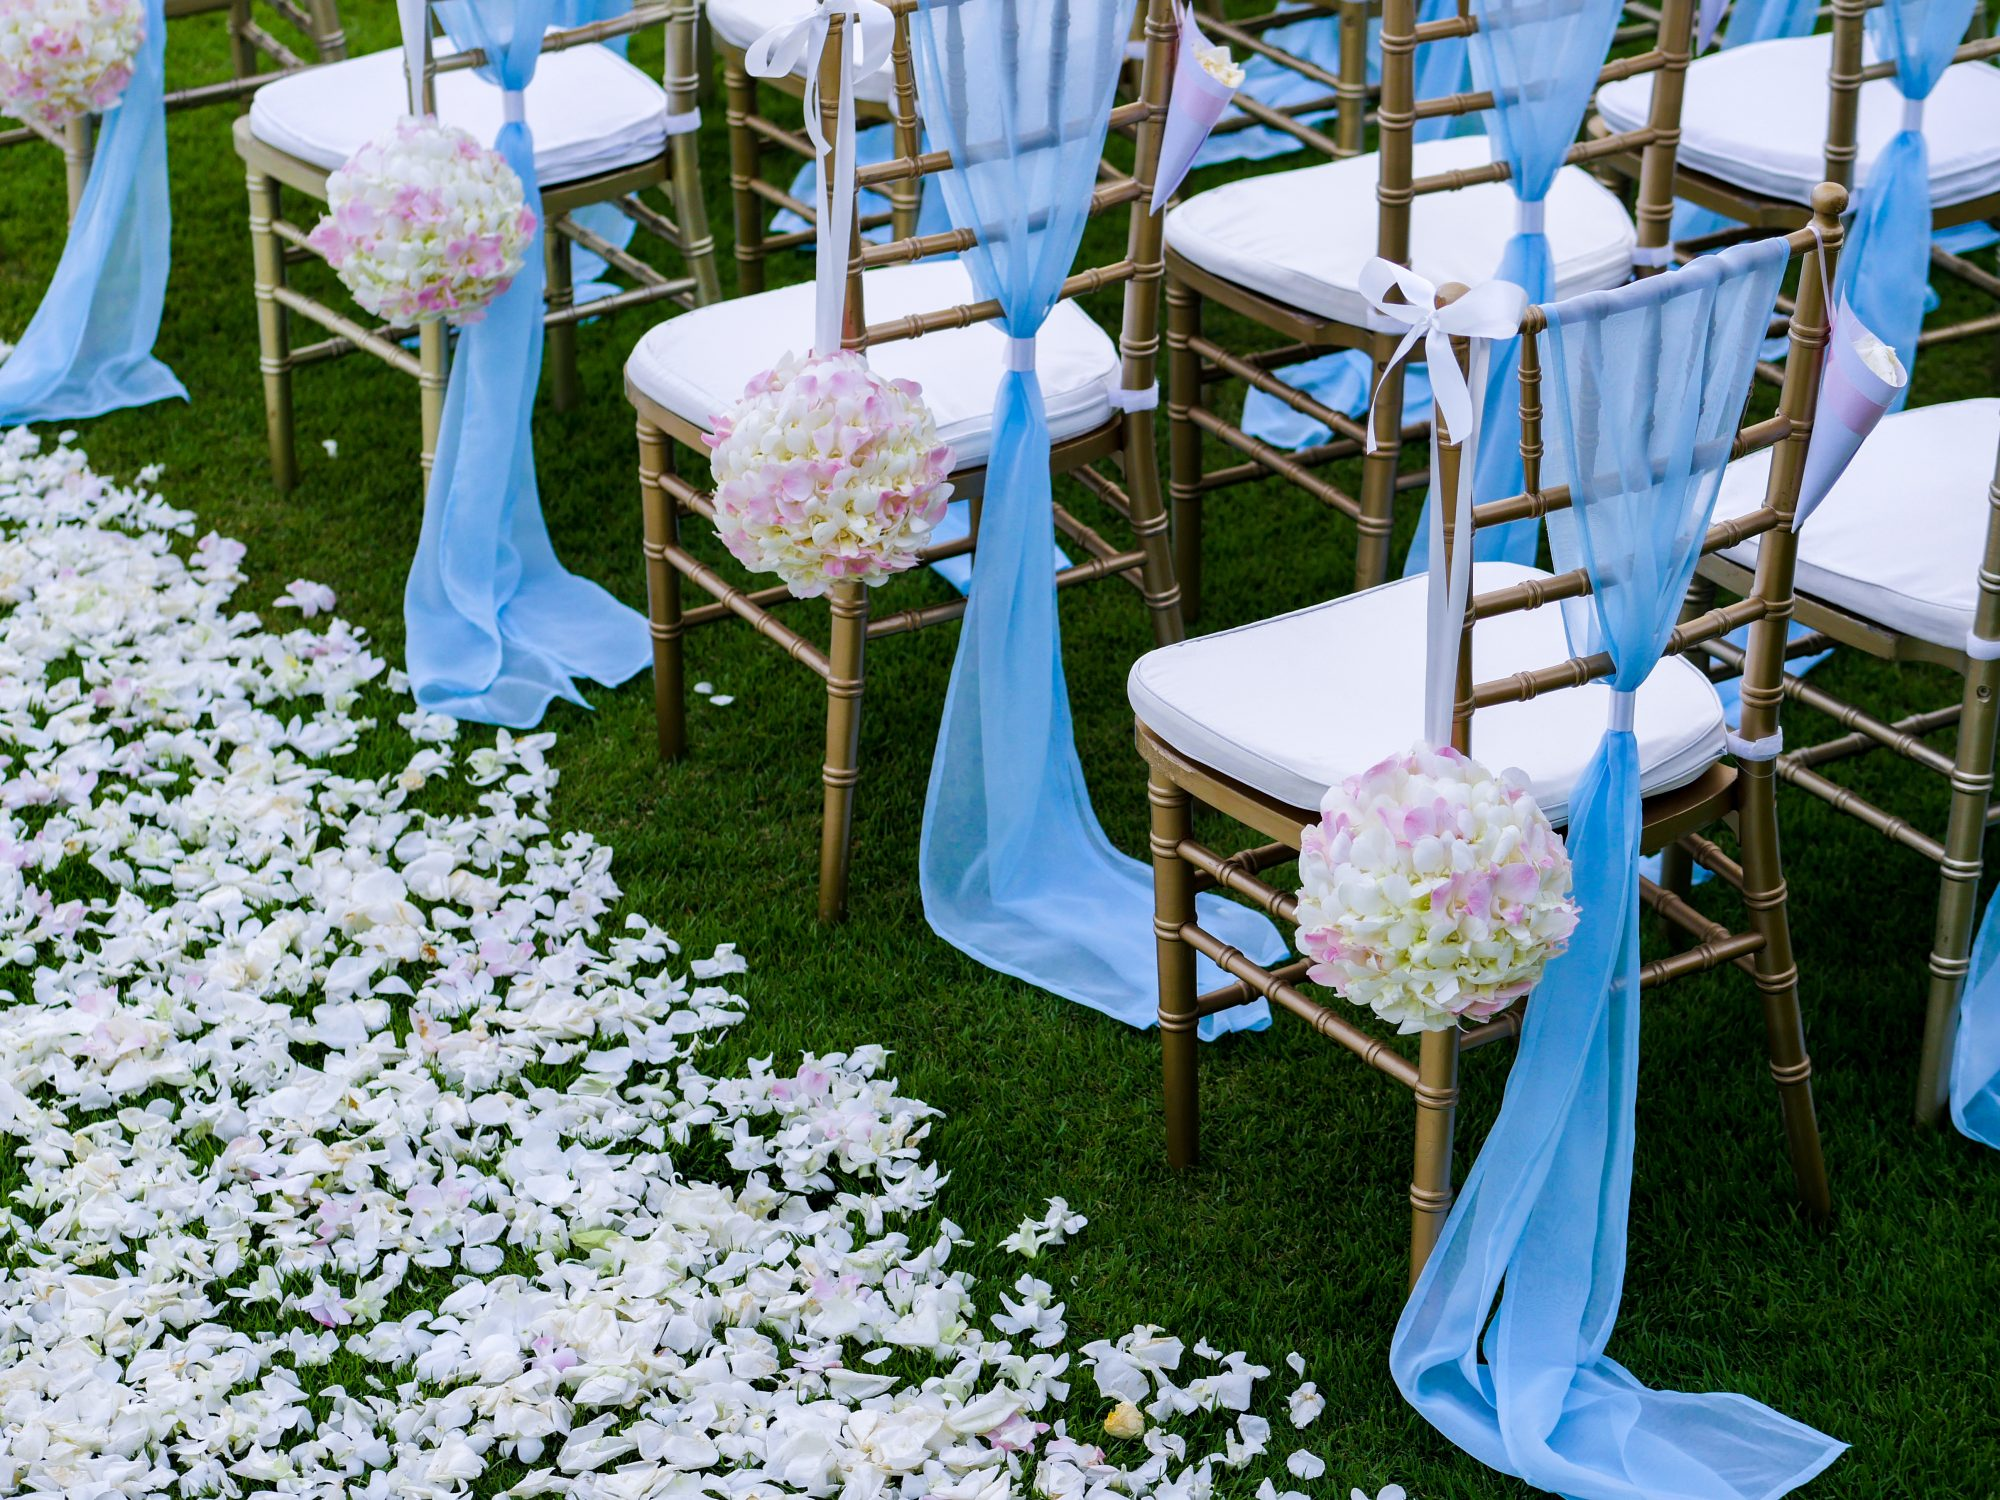 Wedding ceremony aisle chairs with blue decorations